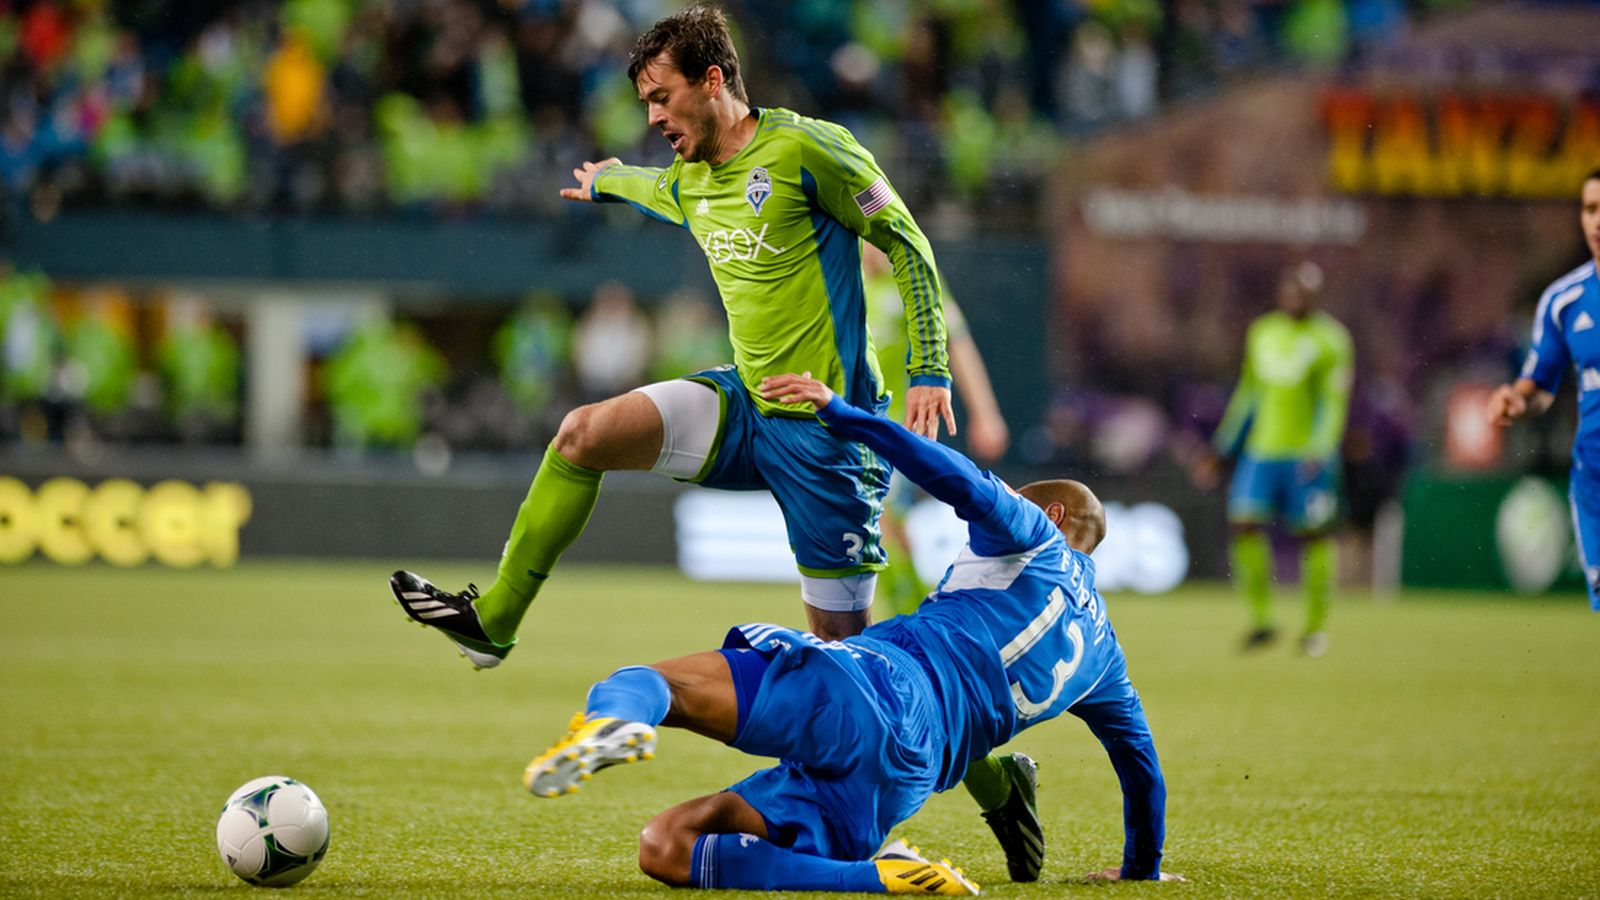 Seattle Sounders vs Montreal Impact